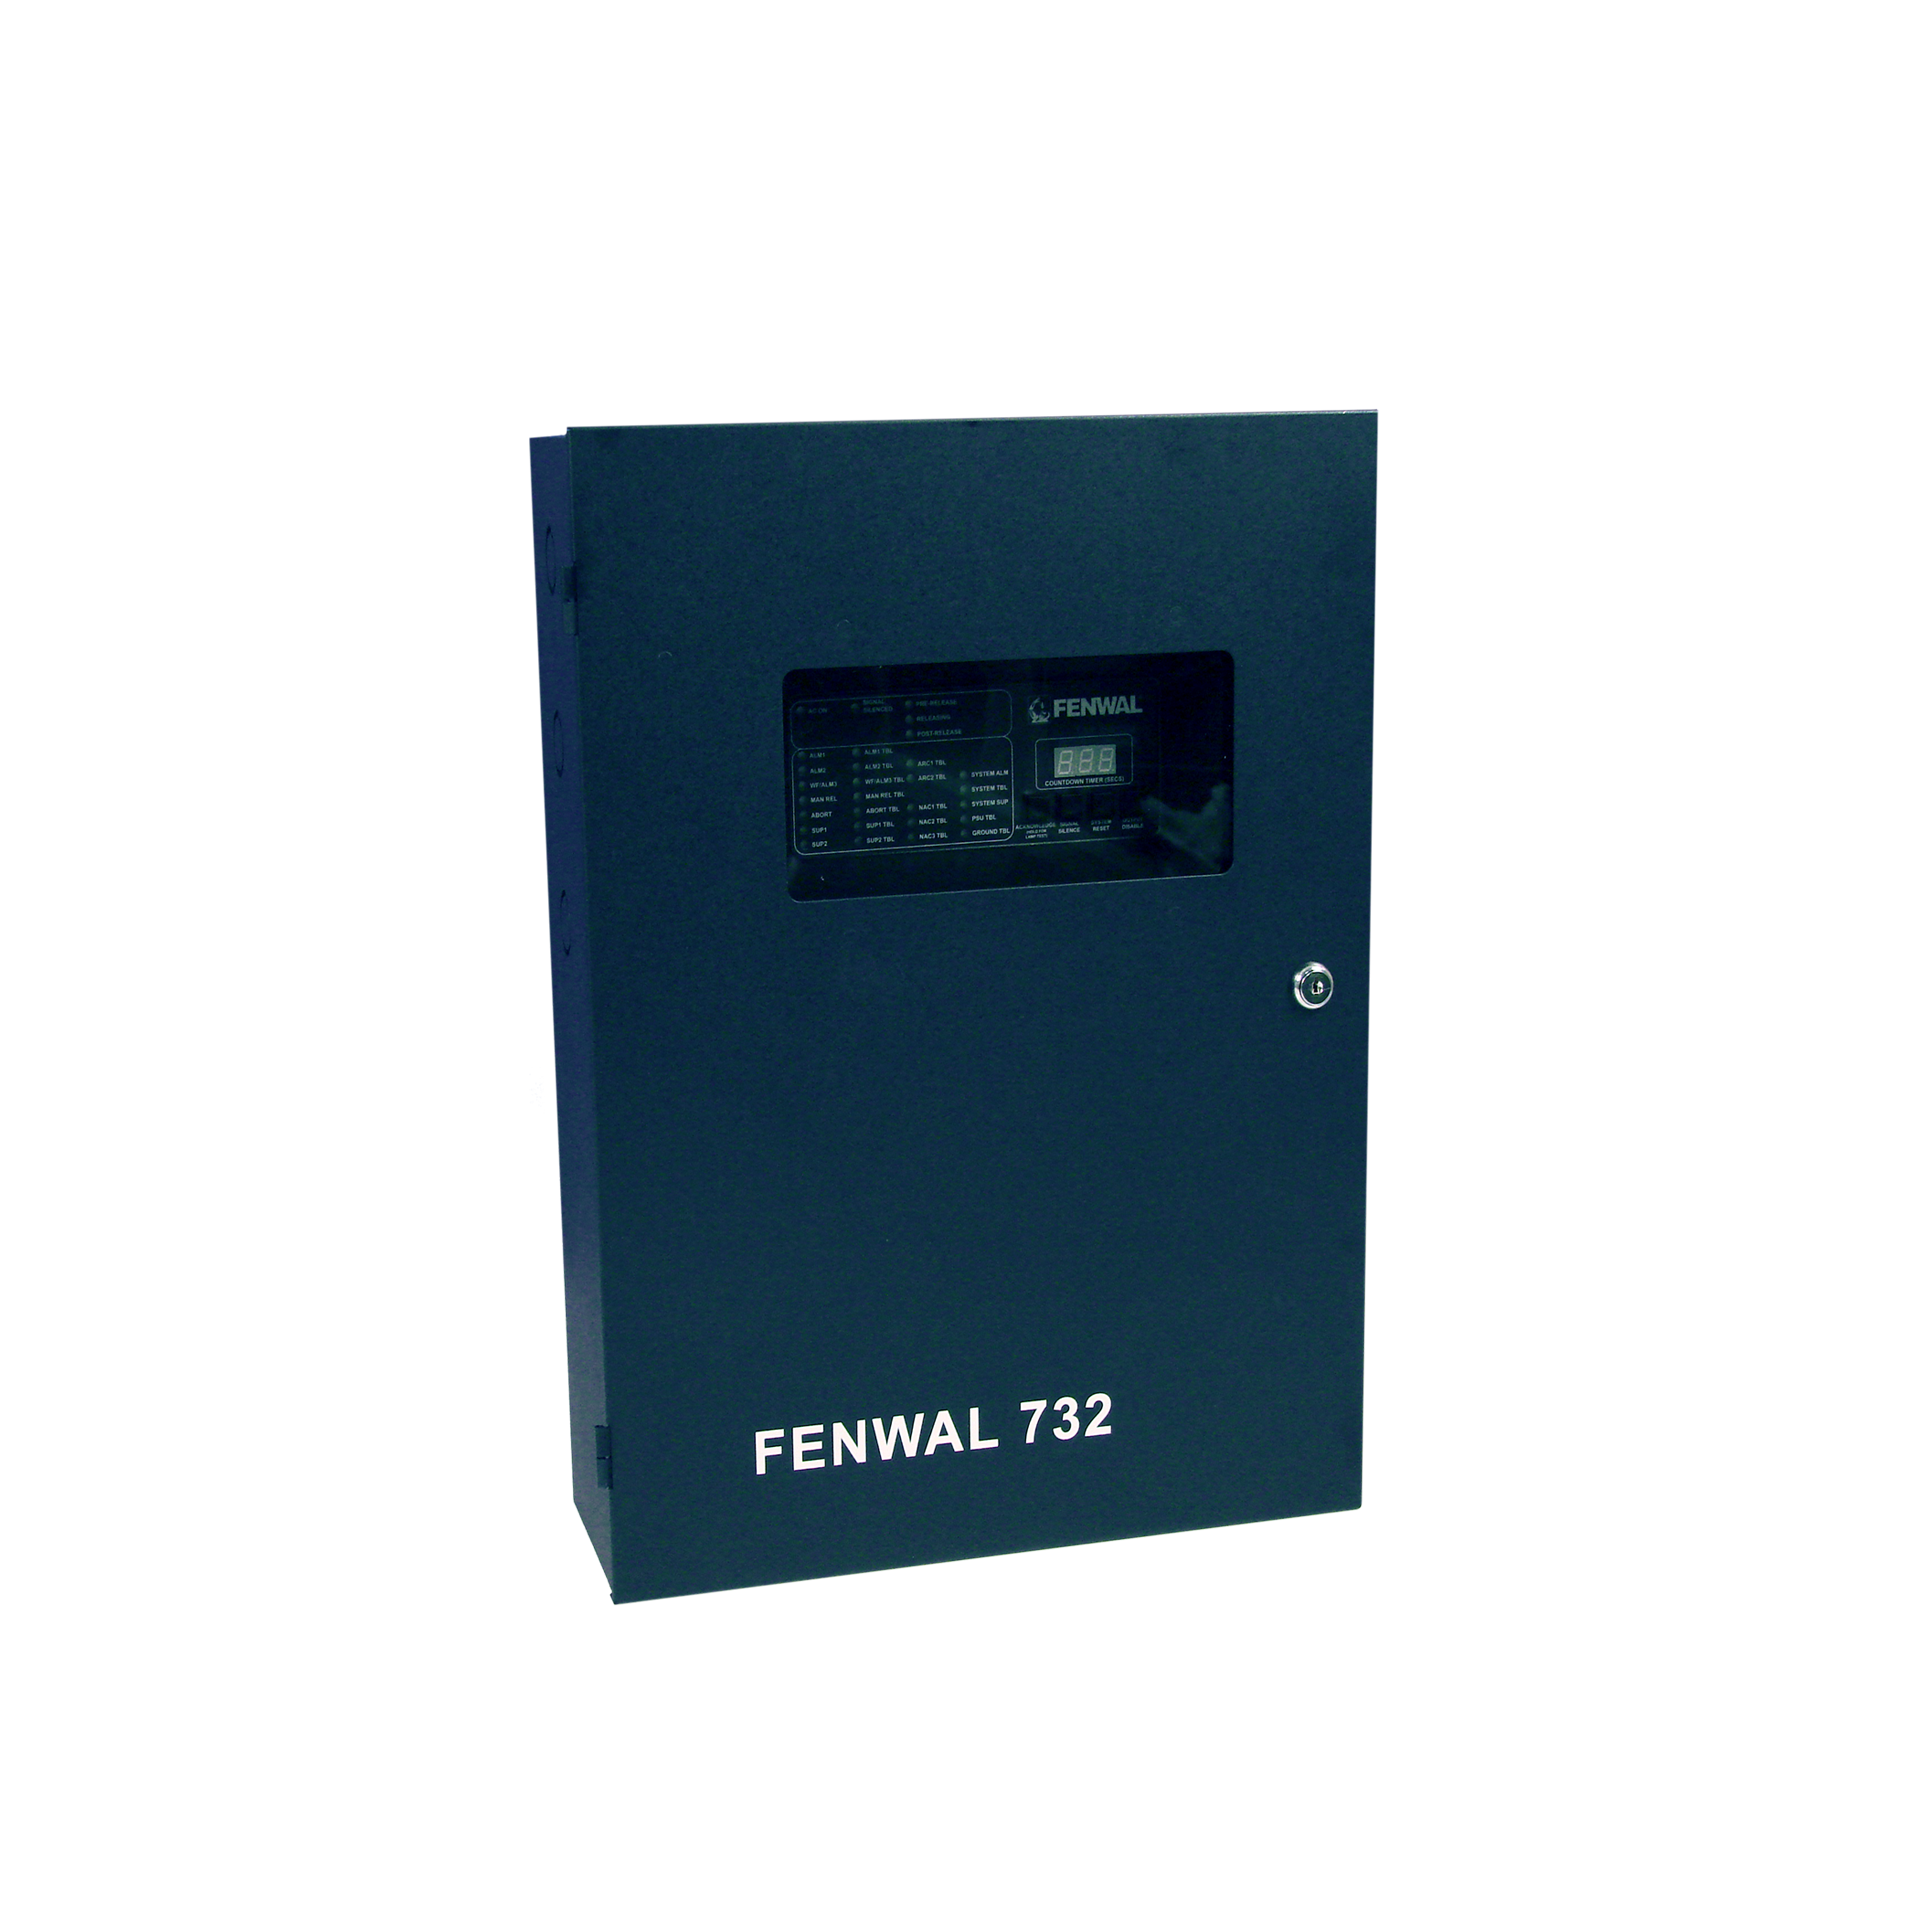 Fenwal_732_Conventional_panel-3.png